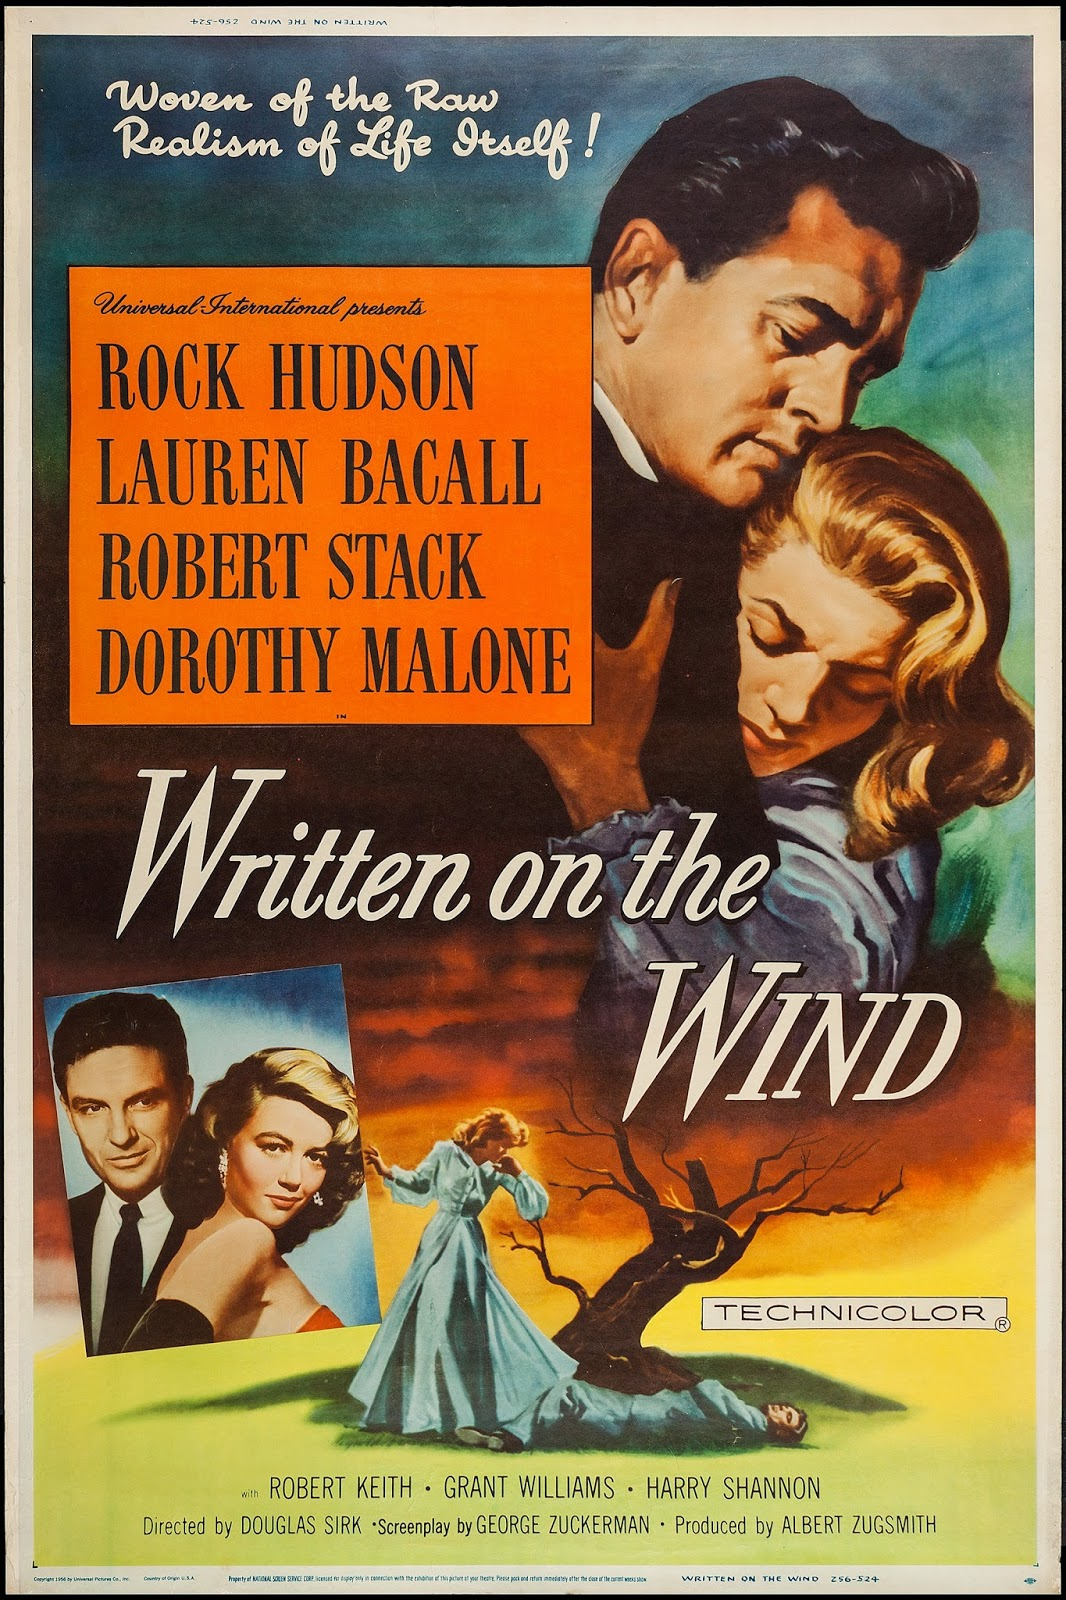 WRITTEN ON THE WIND - American Poster by Reynold Brown 1.jpeg